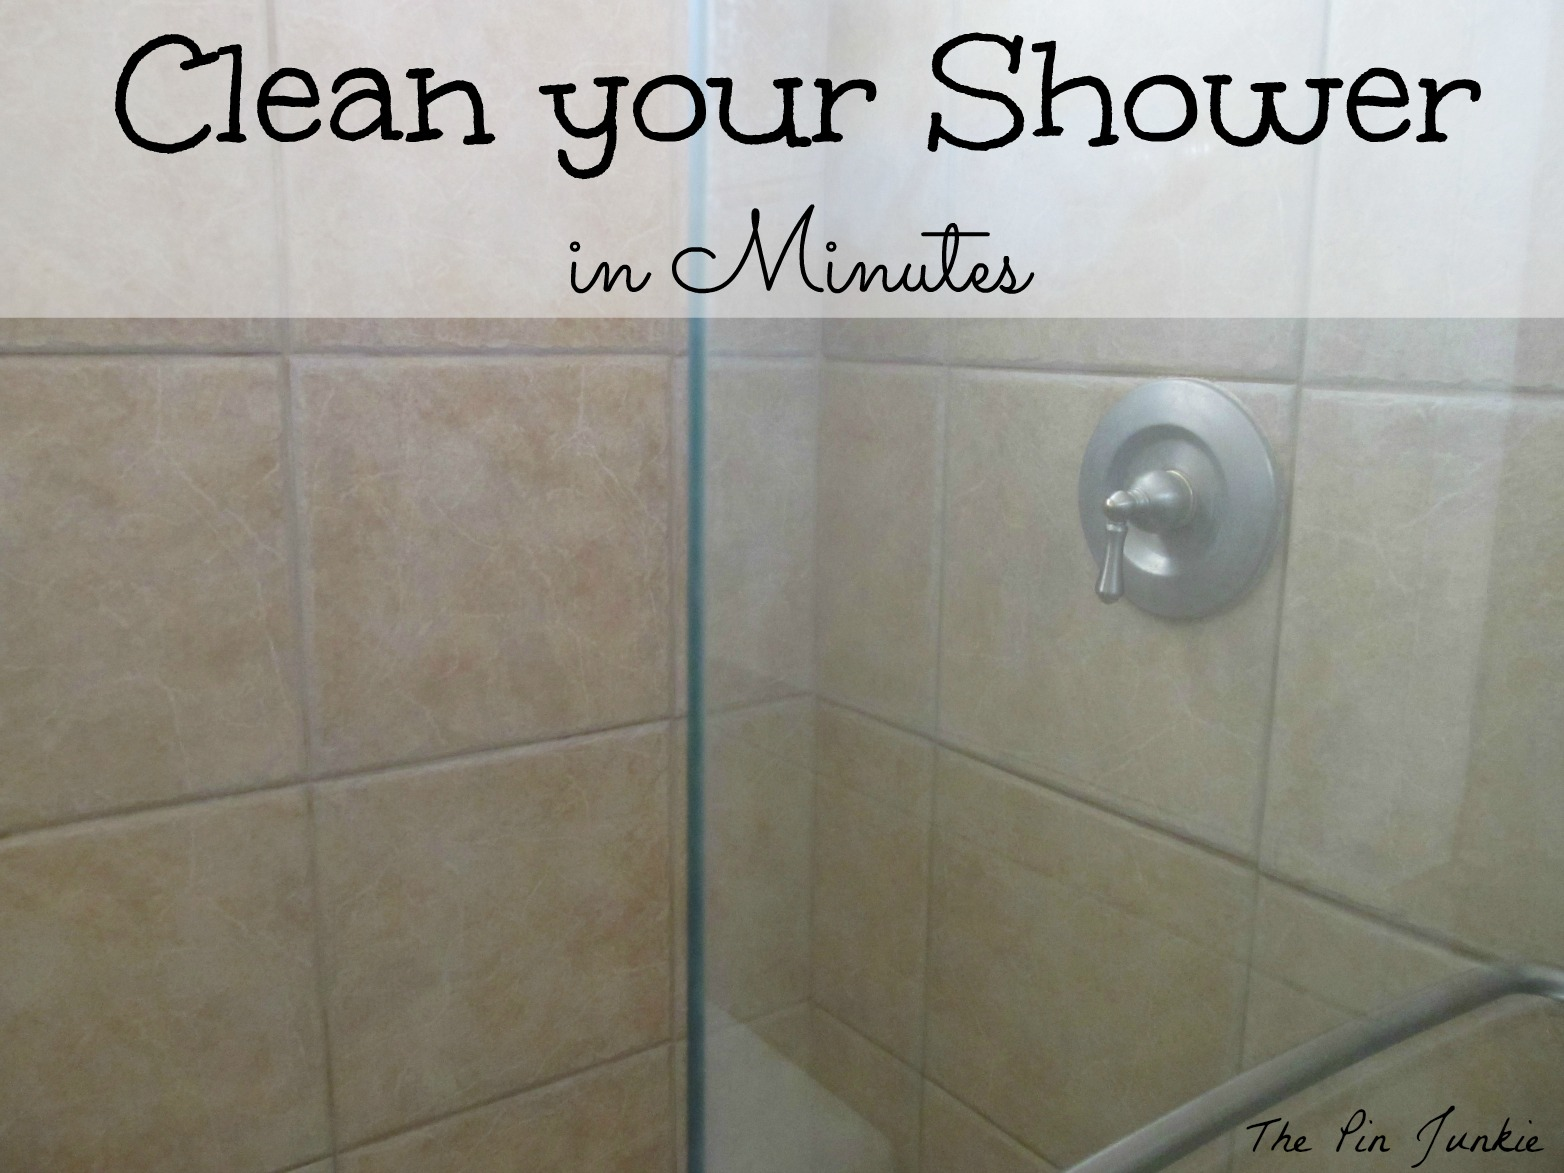 How to clean glass shower doors the easy way how to clean glass shower doors easy way planetlyrics